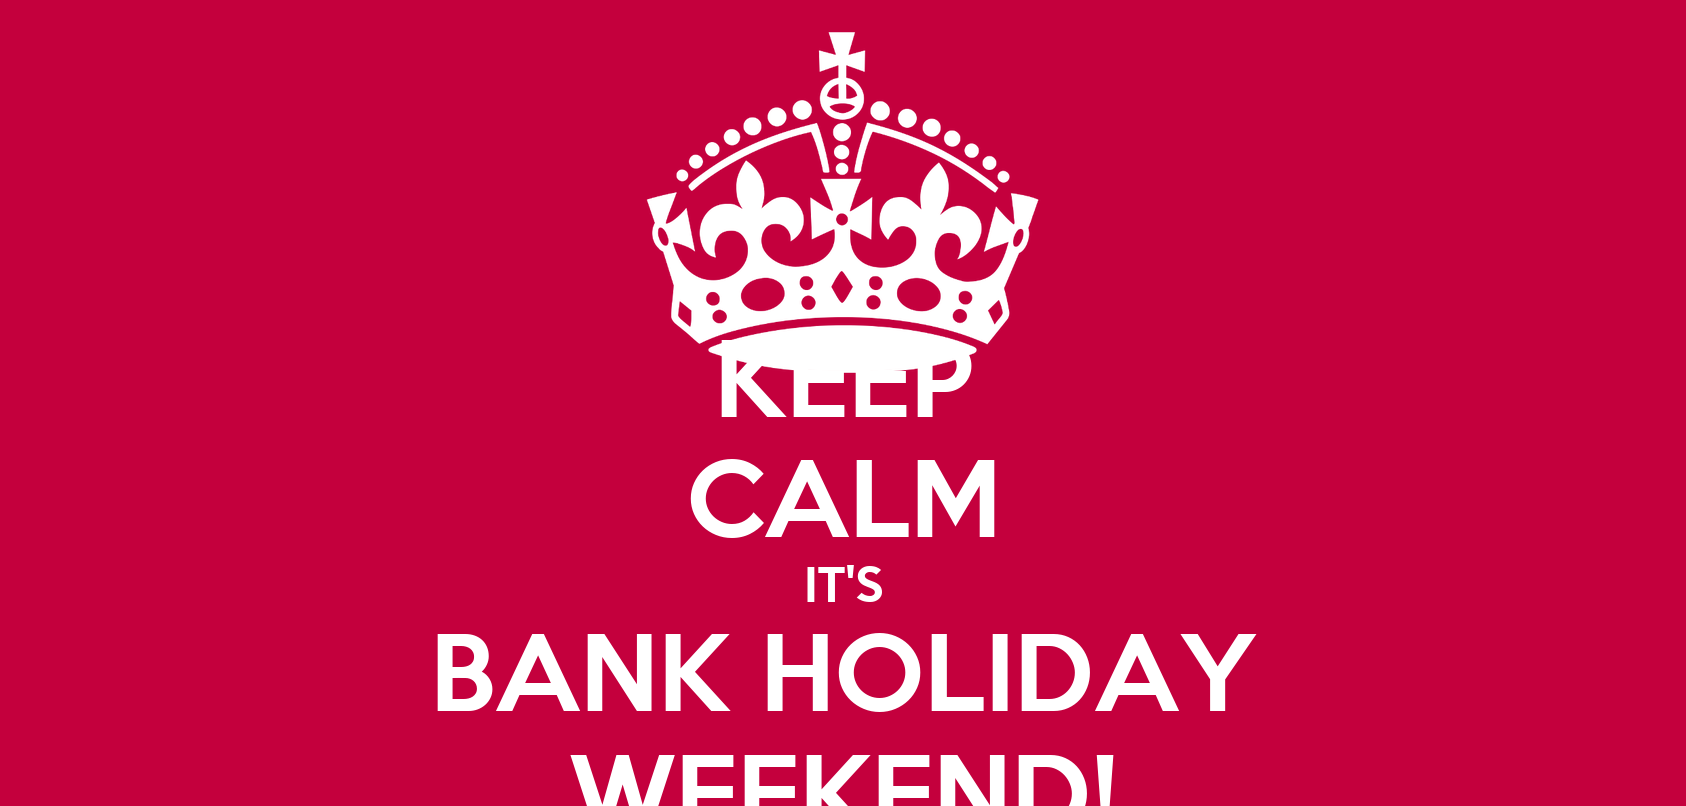 Keep calm it s bank holiday weekend